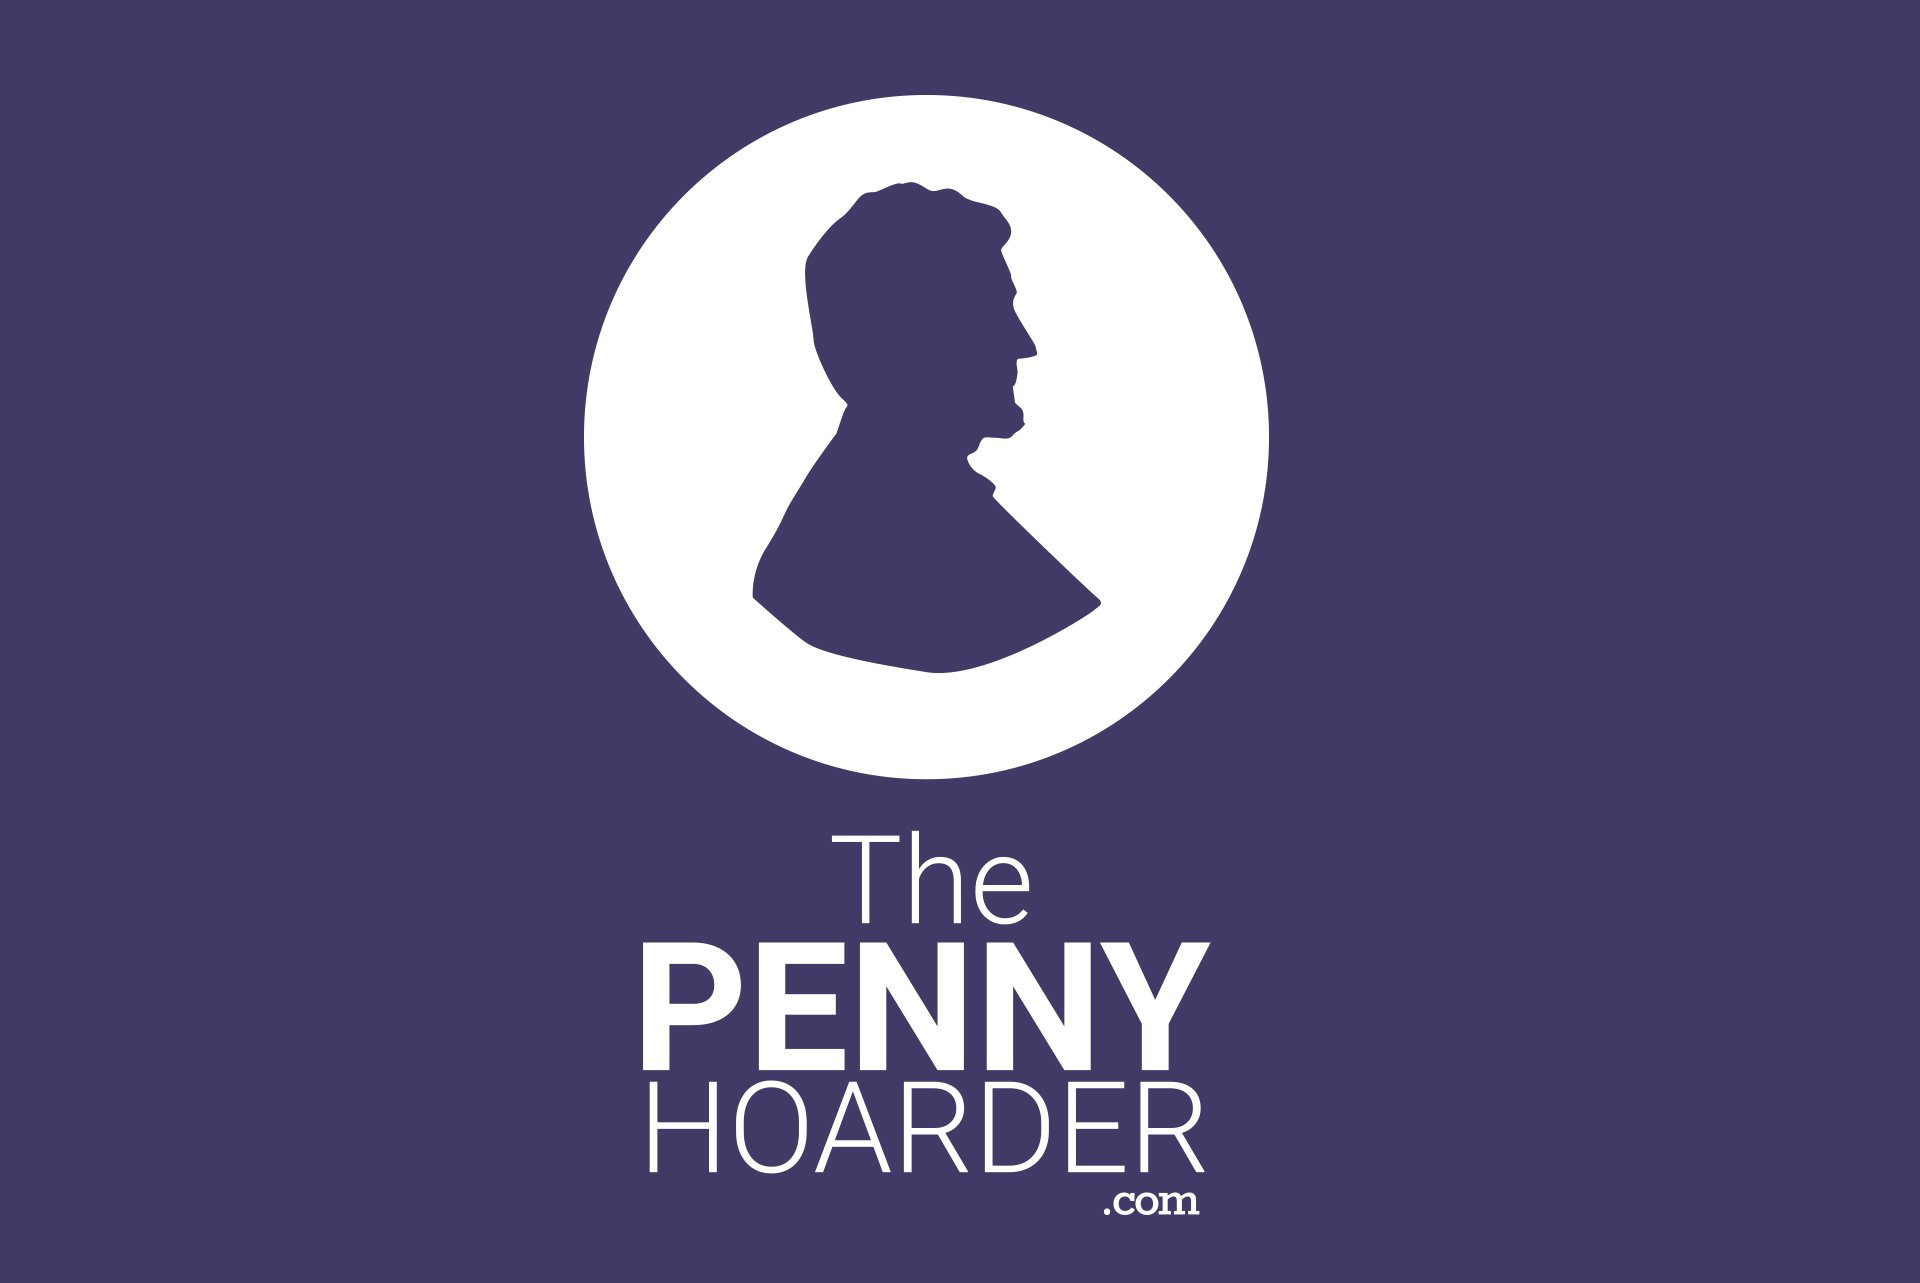 penny_hoarder_logo.png